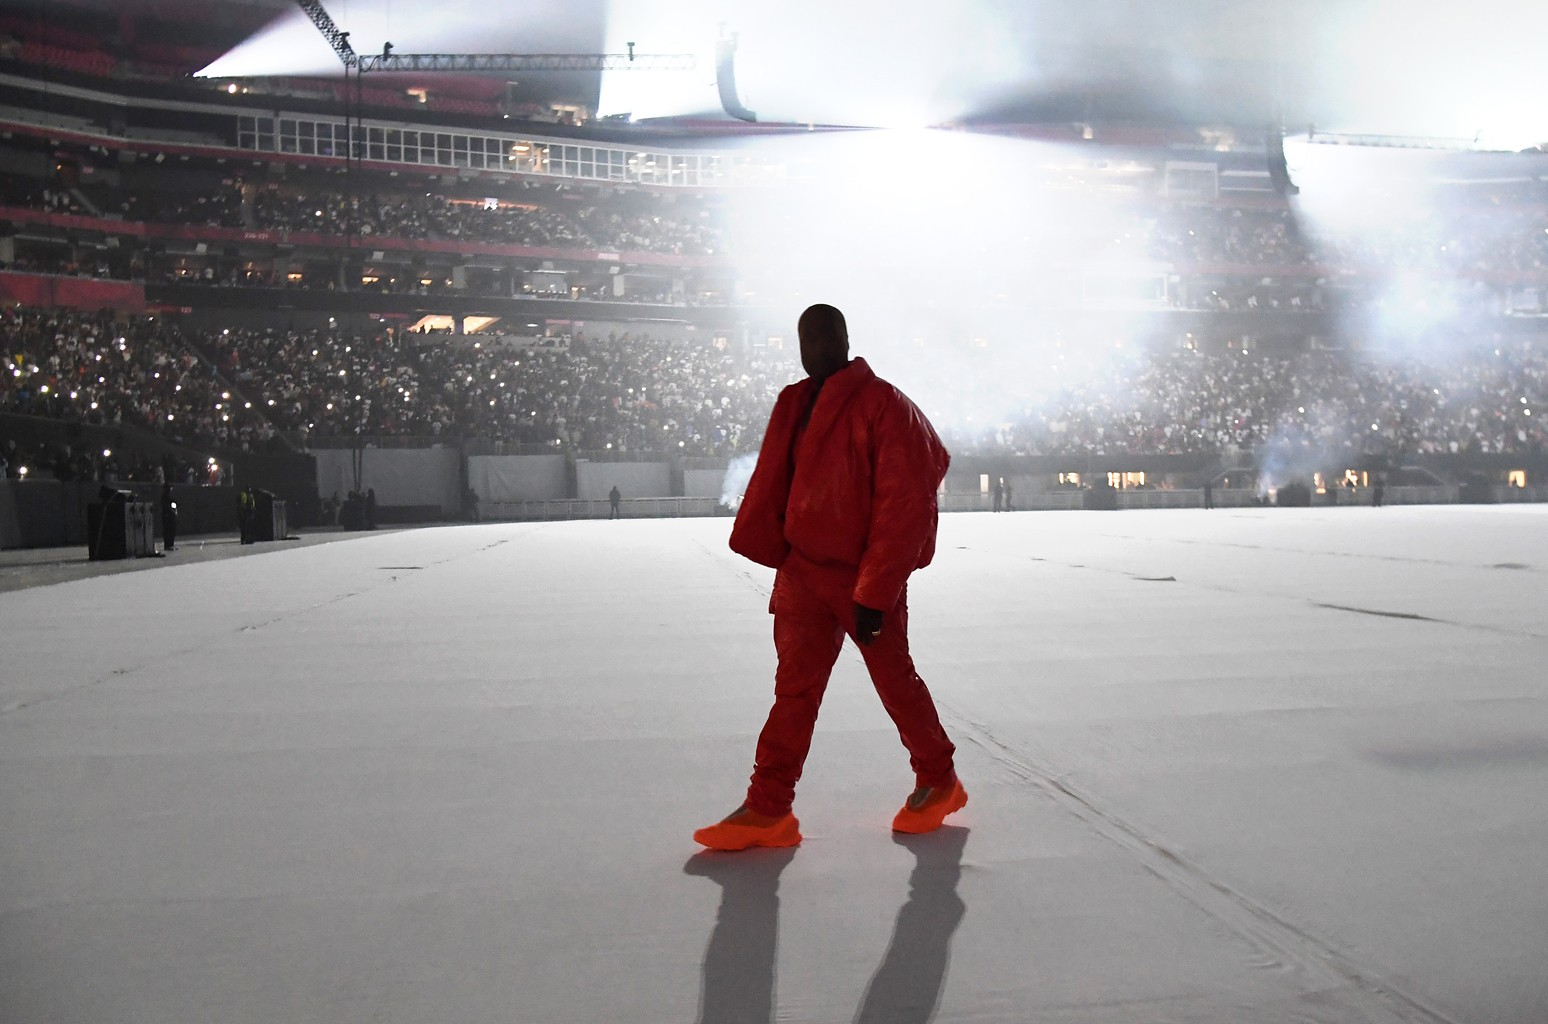 Kanye West's 'Hurricane' Lands at No. 1 on Hot R&B/Hip-Hop Songs